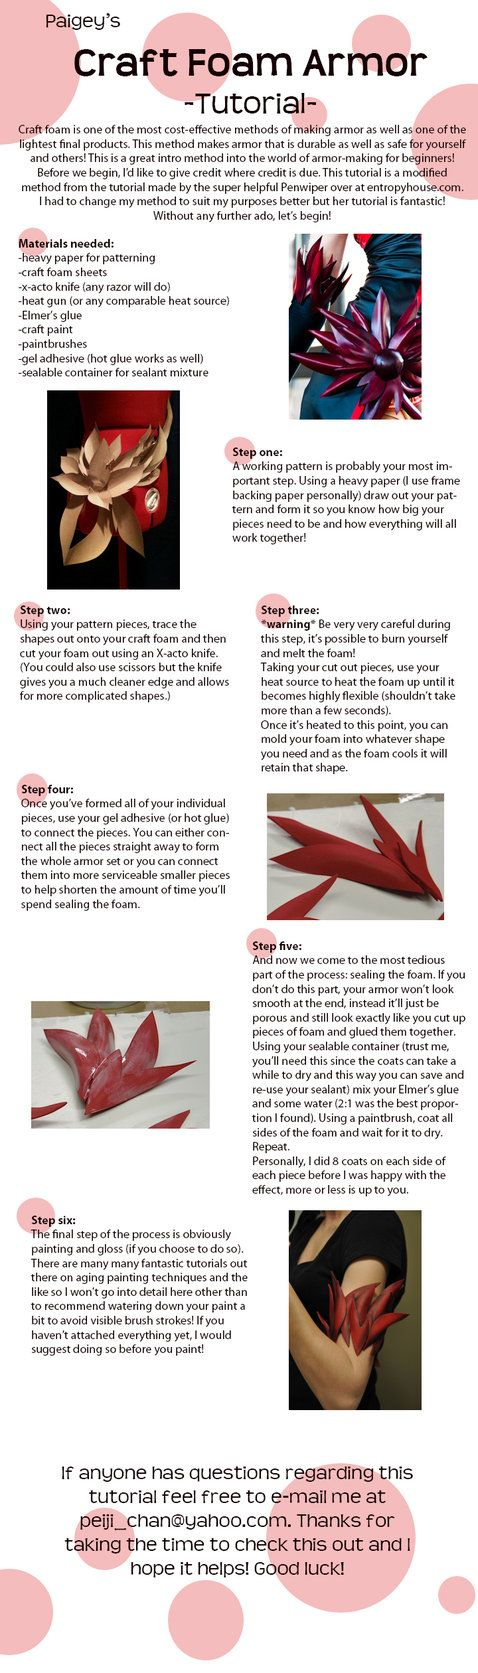 Craft Foam Armor Tutorial by ~MissCordie on deviantART